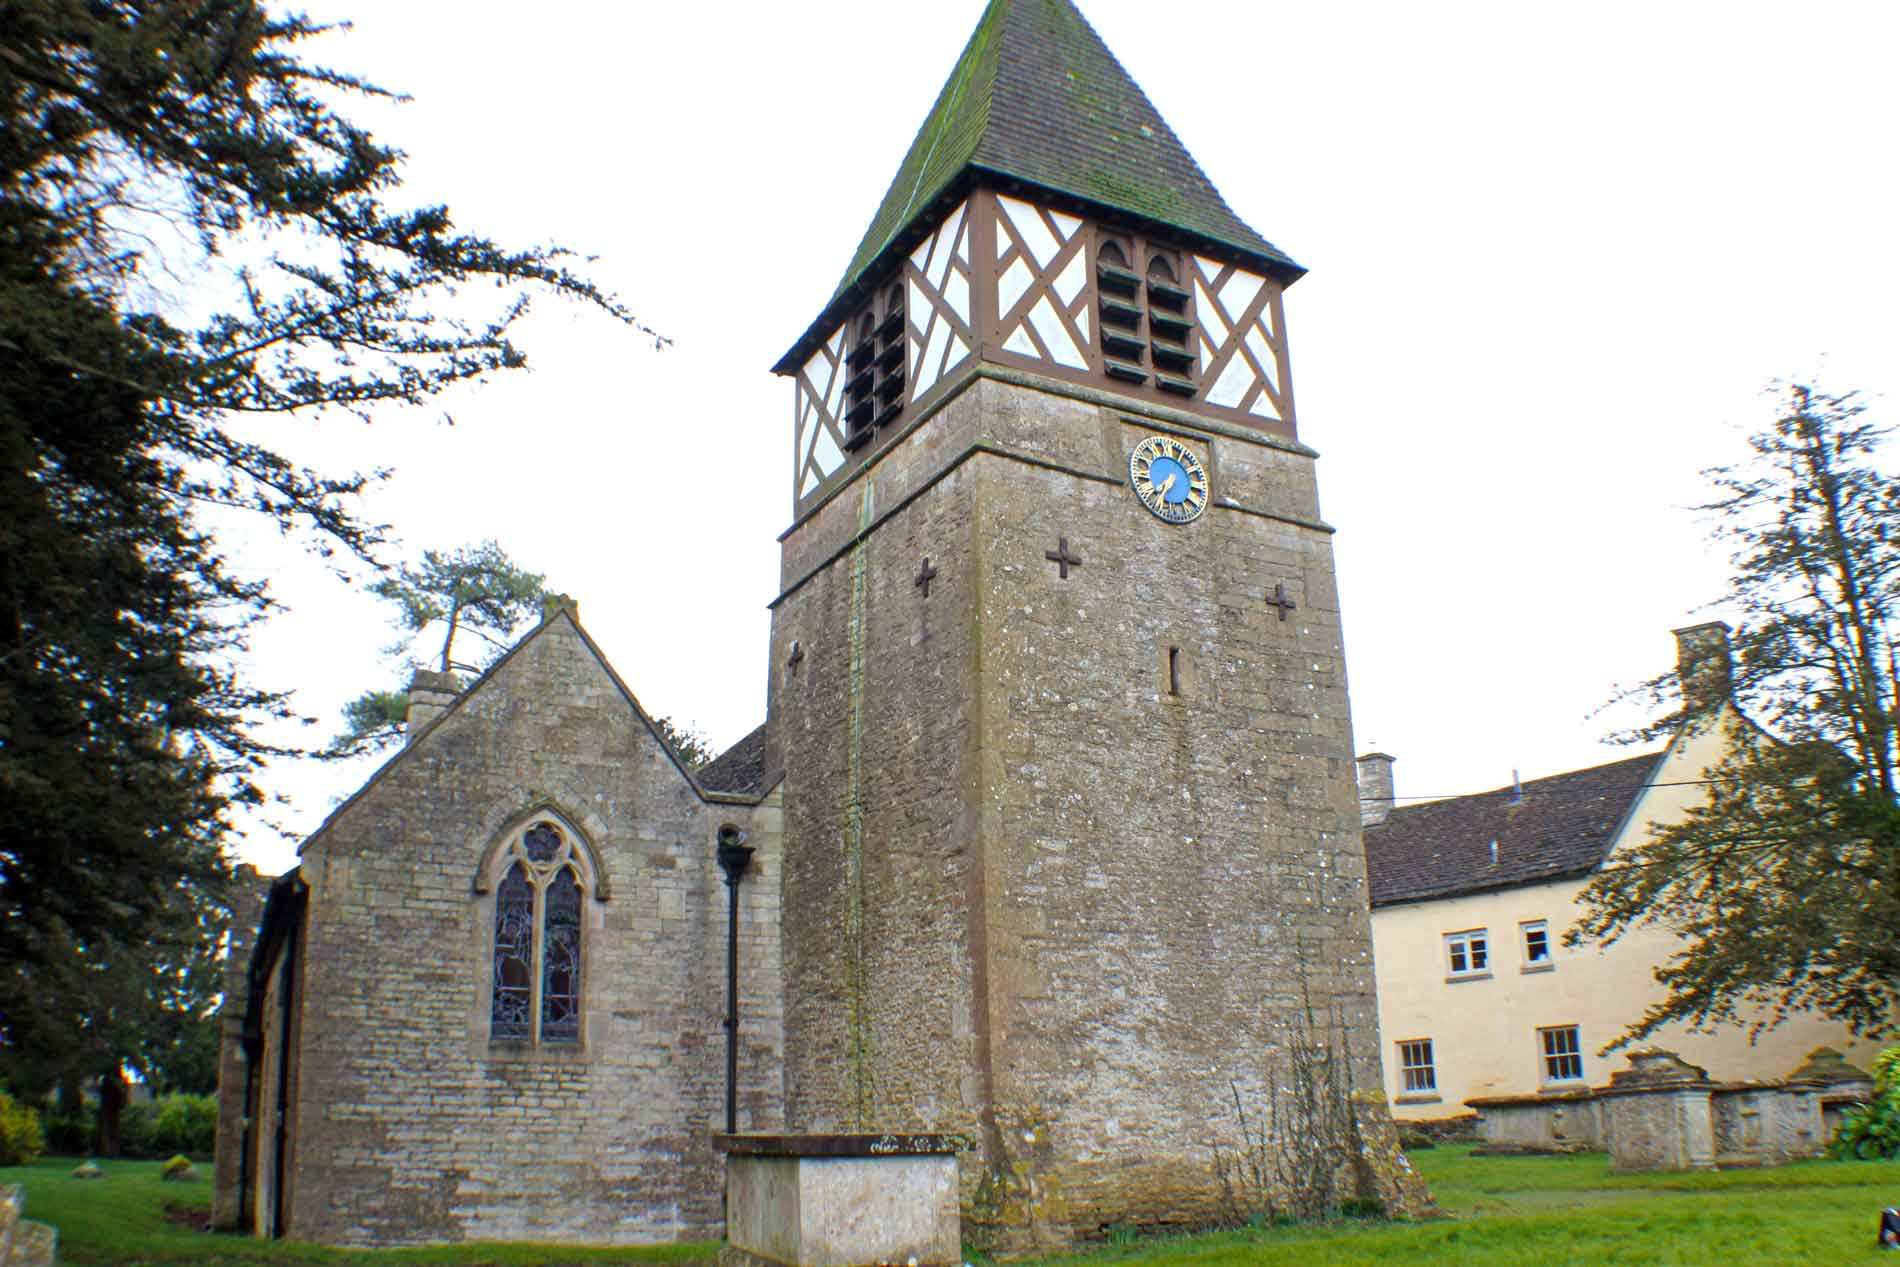 Leighterton - St. Andrew